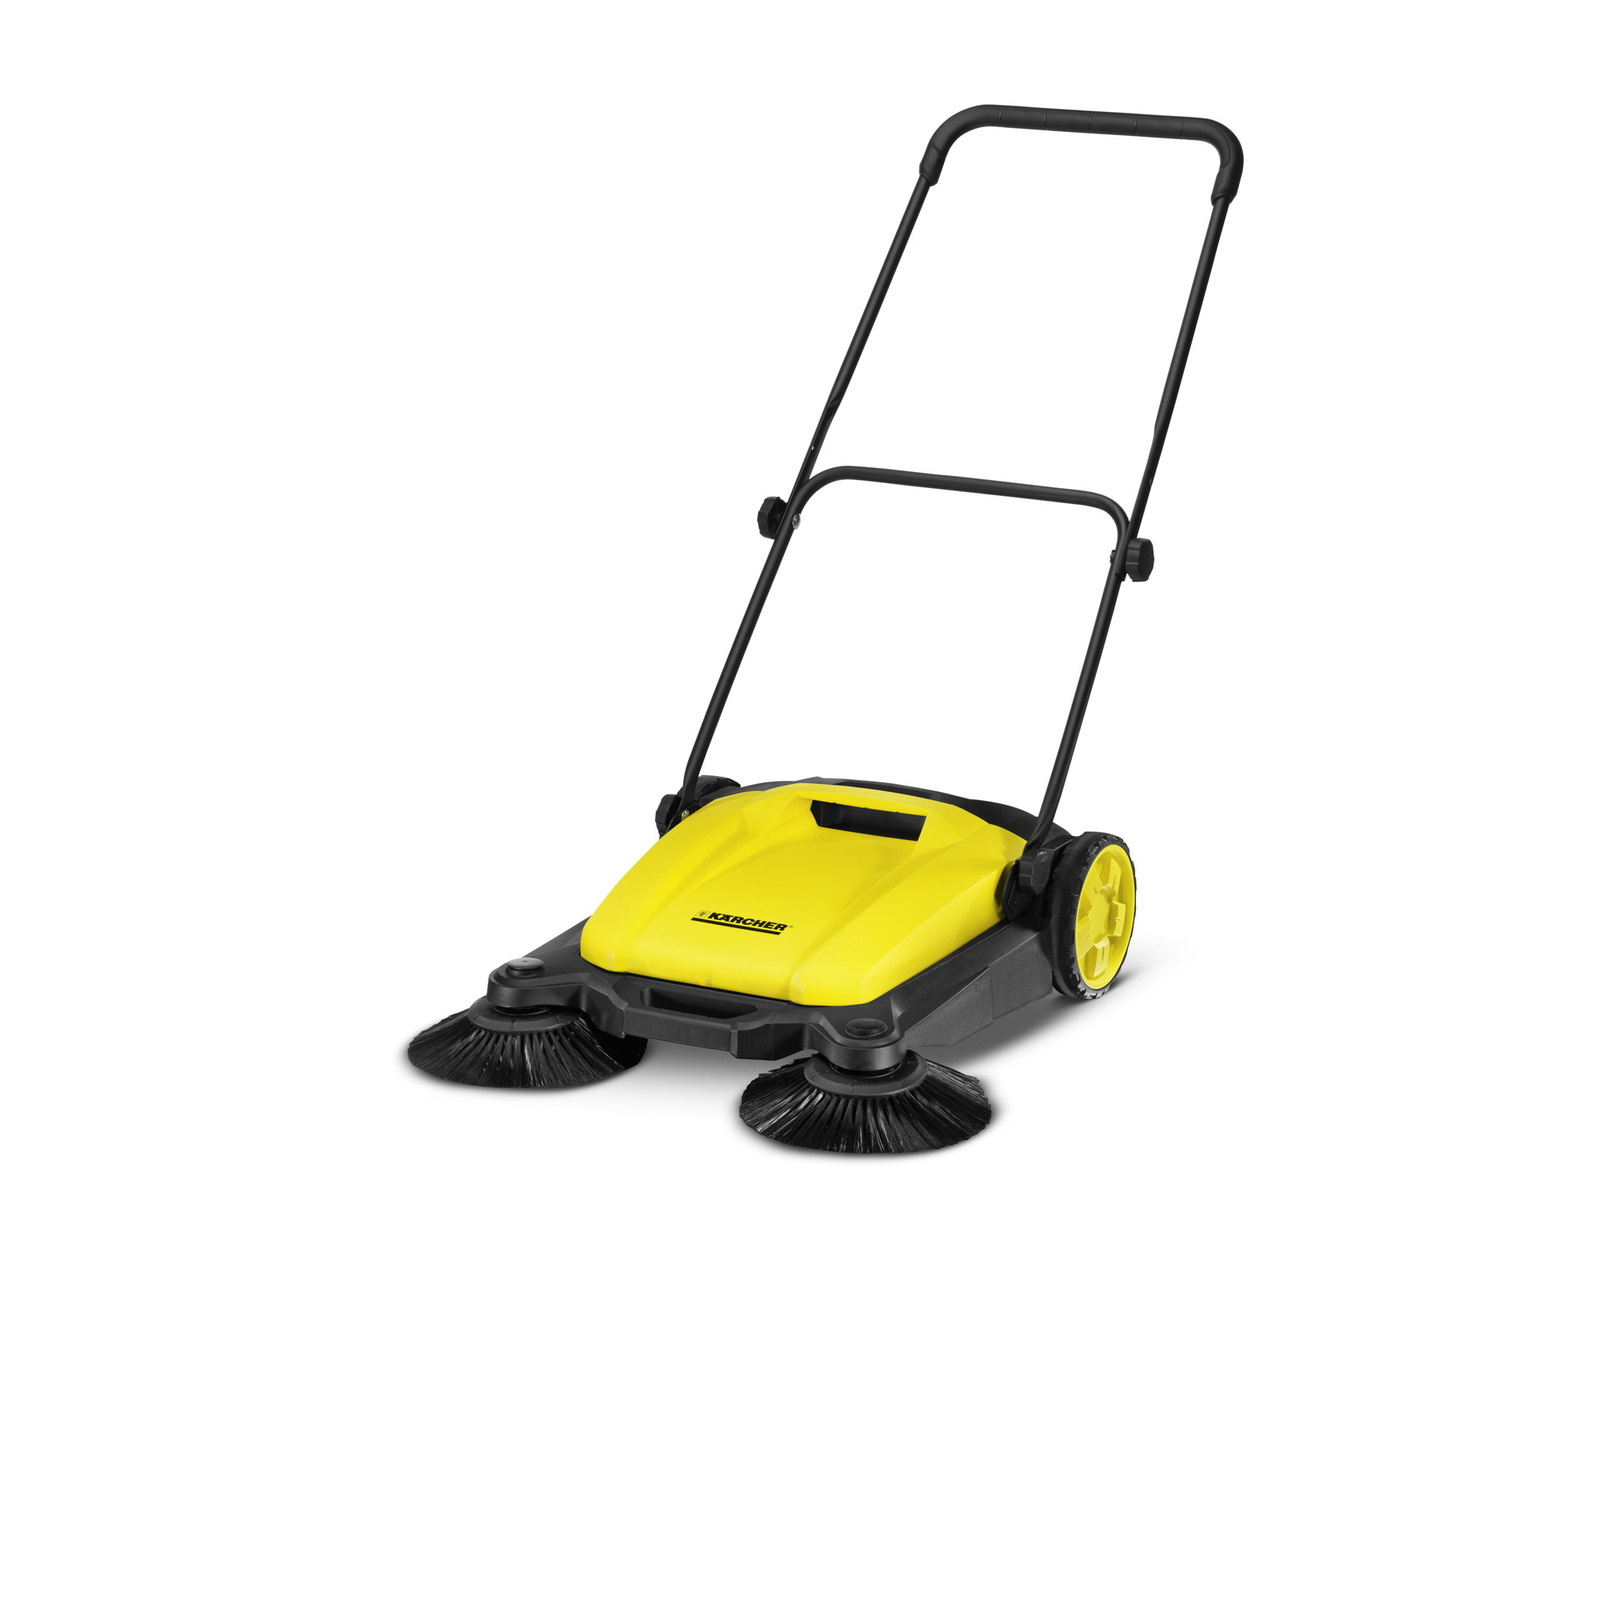 Picture of Karcher S 650 Sweeper, 25.6 in W Cleaning Path, 4.2 gal Solution Tank